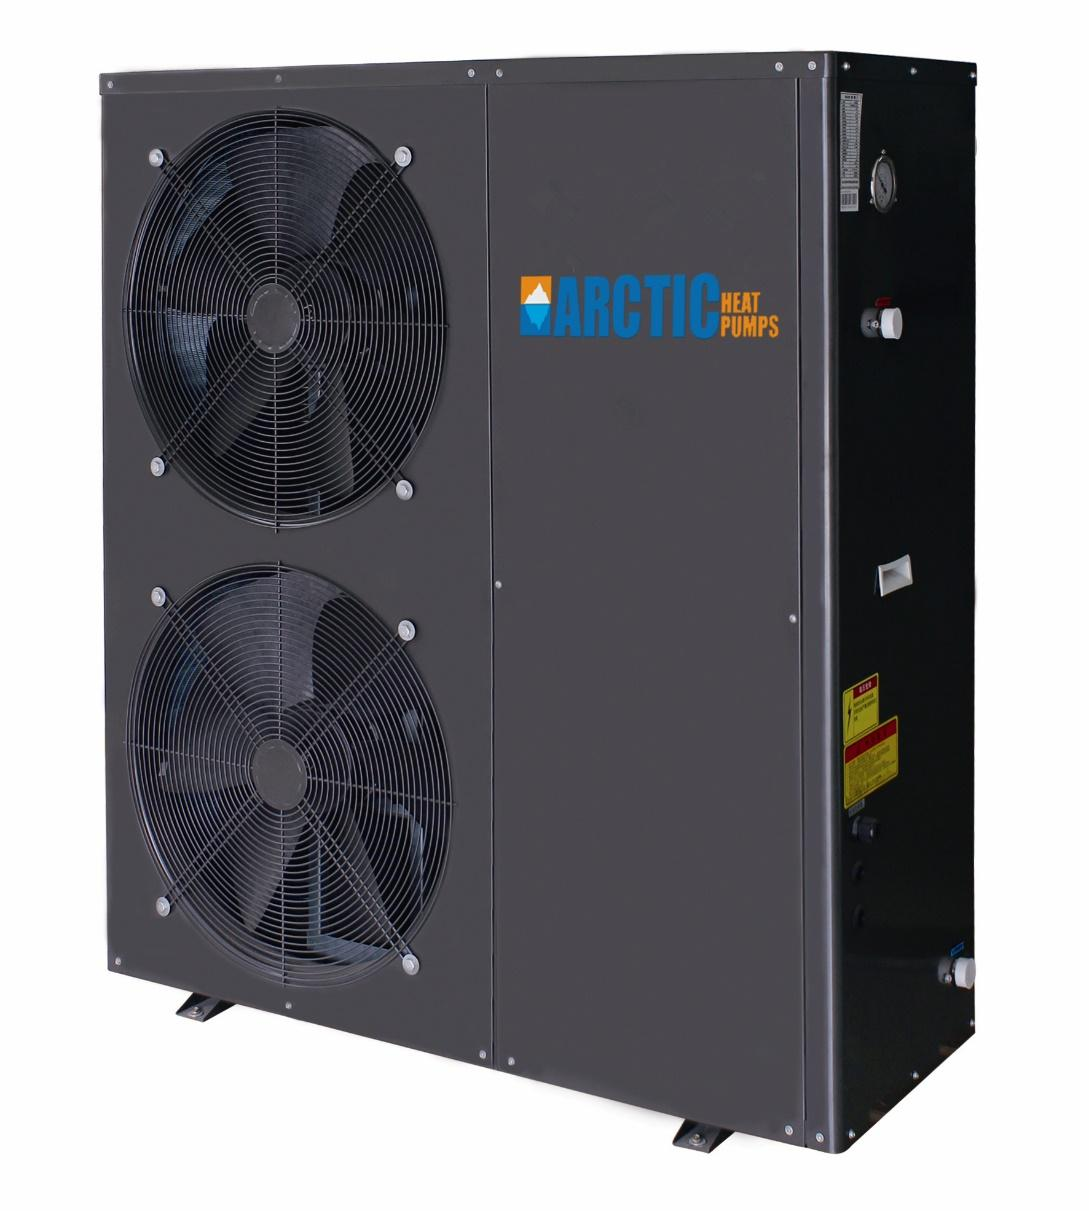 Arctic Hydronic Air To Water Heat Pump 60 000 Btu With